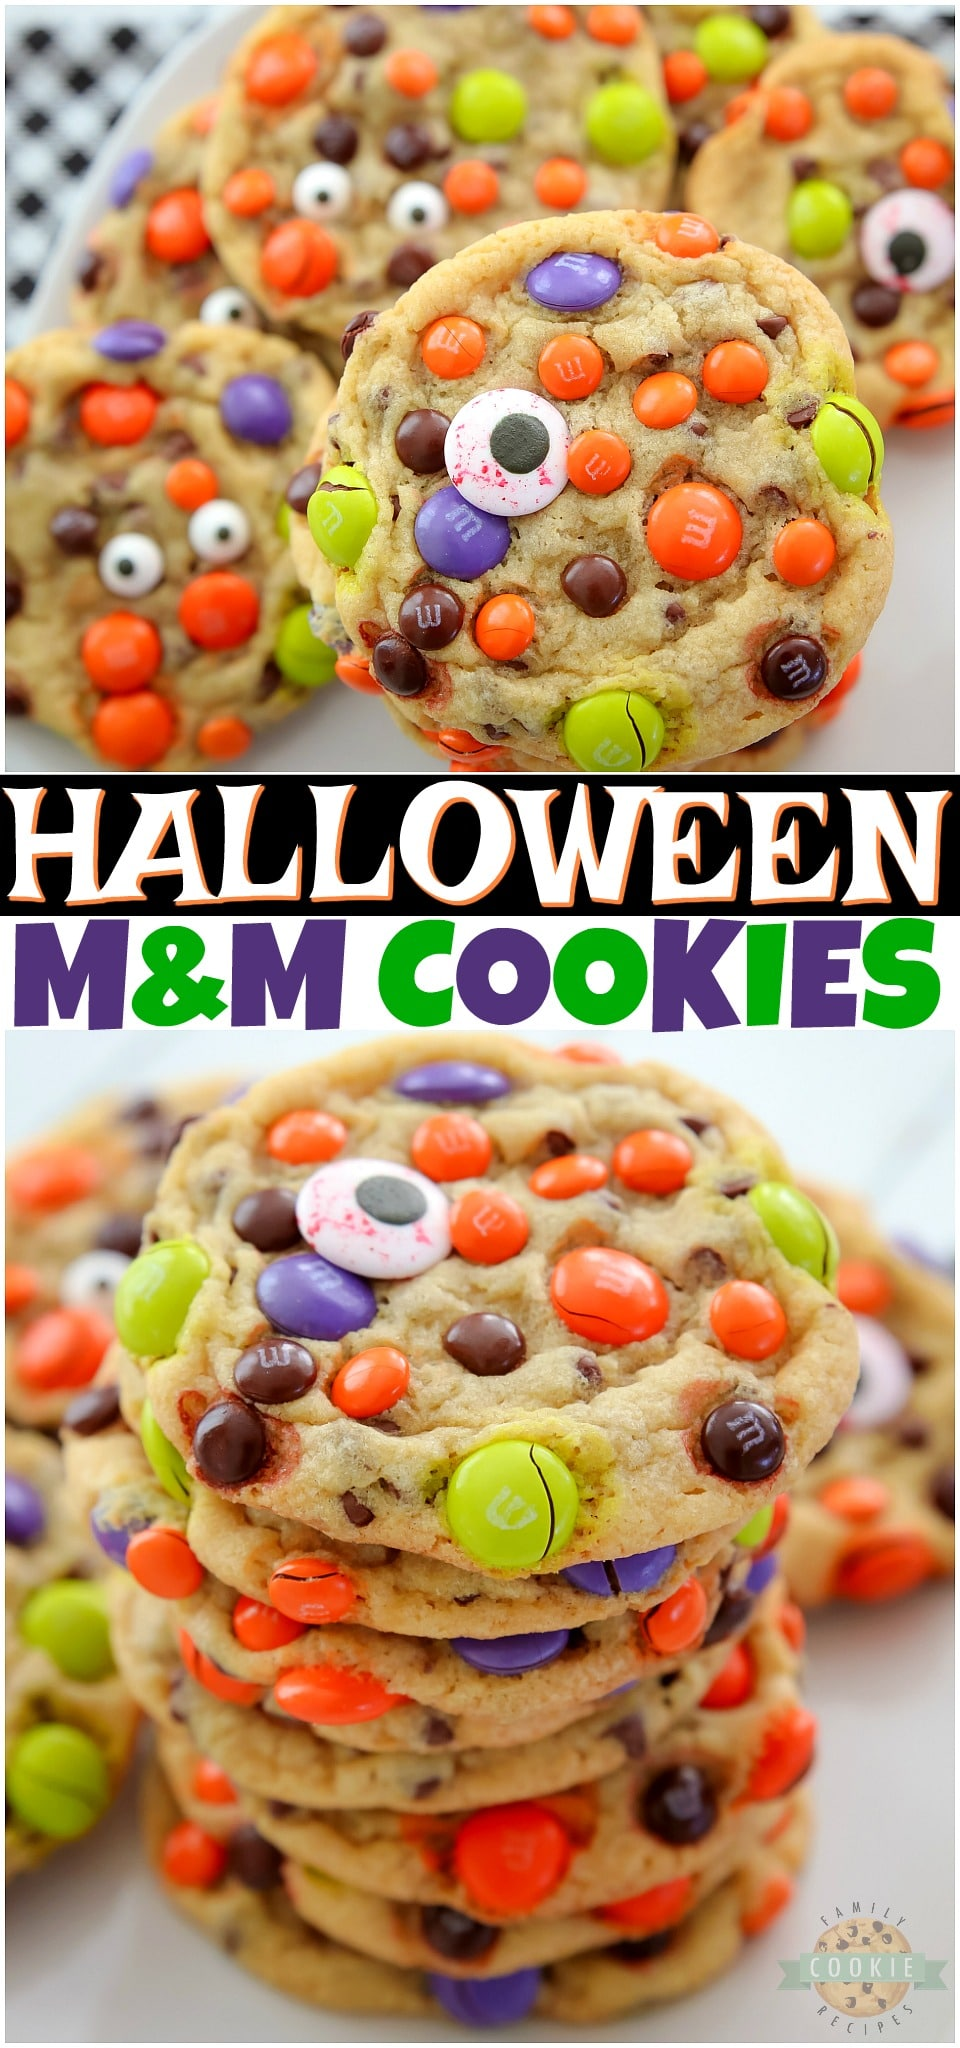 Perfect M&M HALLOWEEN Cookies made with butter, sugars, pudding mix & festive M&M's candies! Fun & festive Halloween Cookie recipe with candythat everyone loves! #cookies #M&M #Halloween #cookierecipe #HalloweenCookies #easyrecipe from FAMILY COOKIE RECIPES via @familycookierecipes